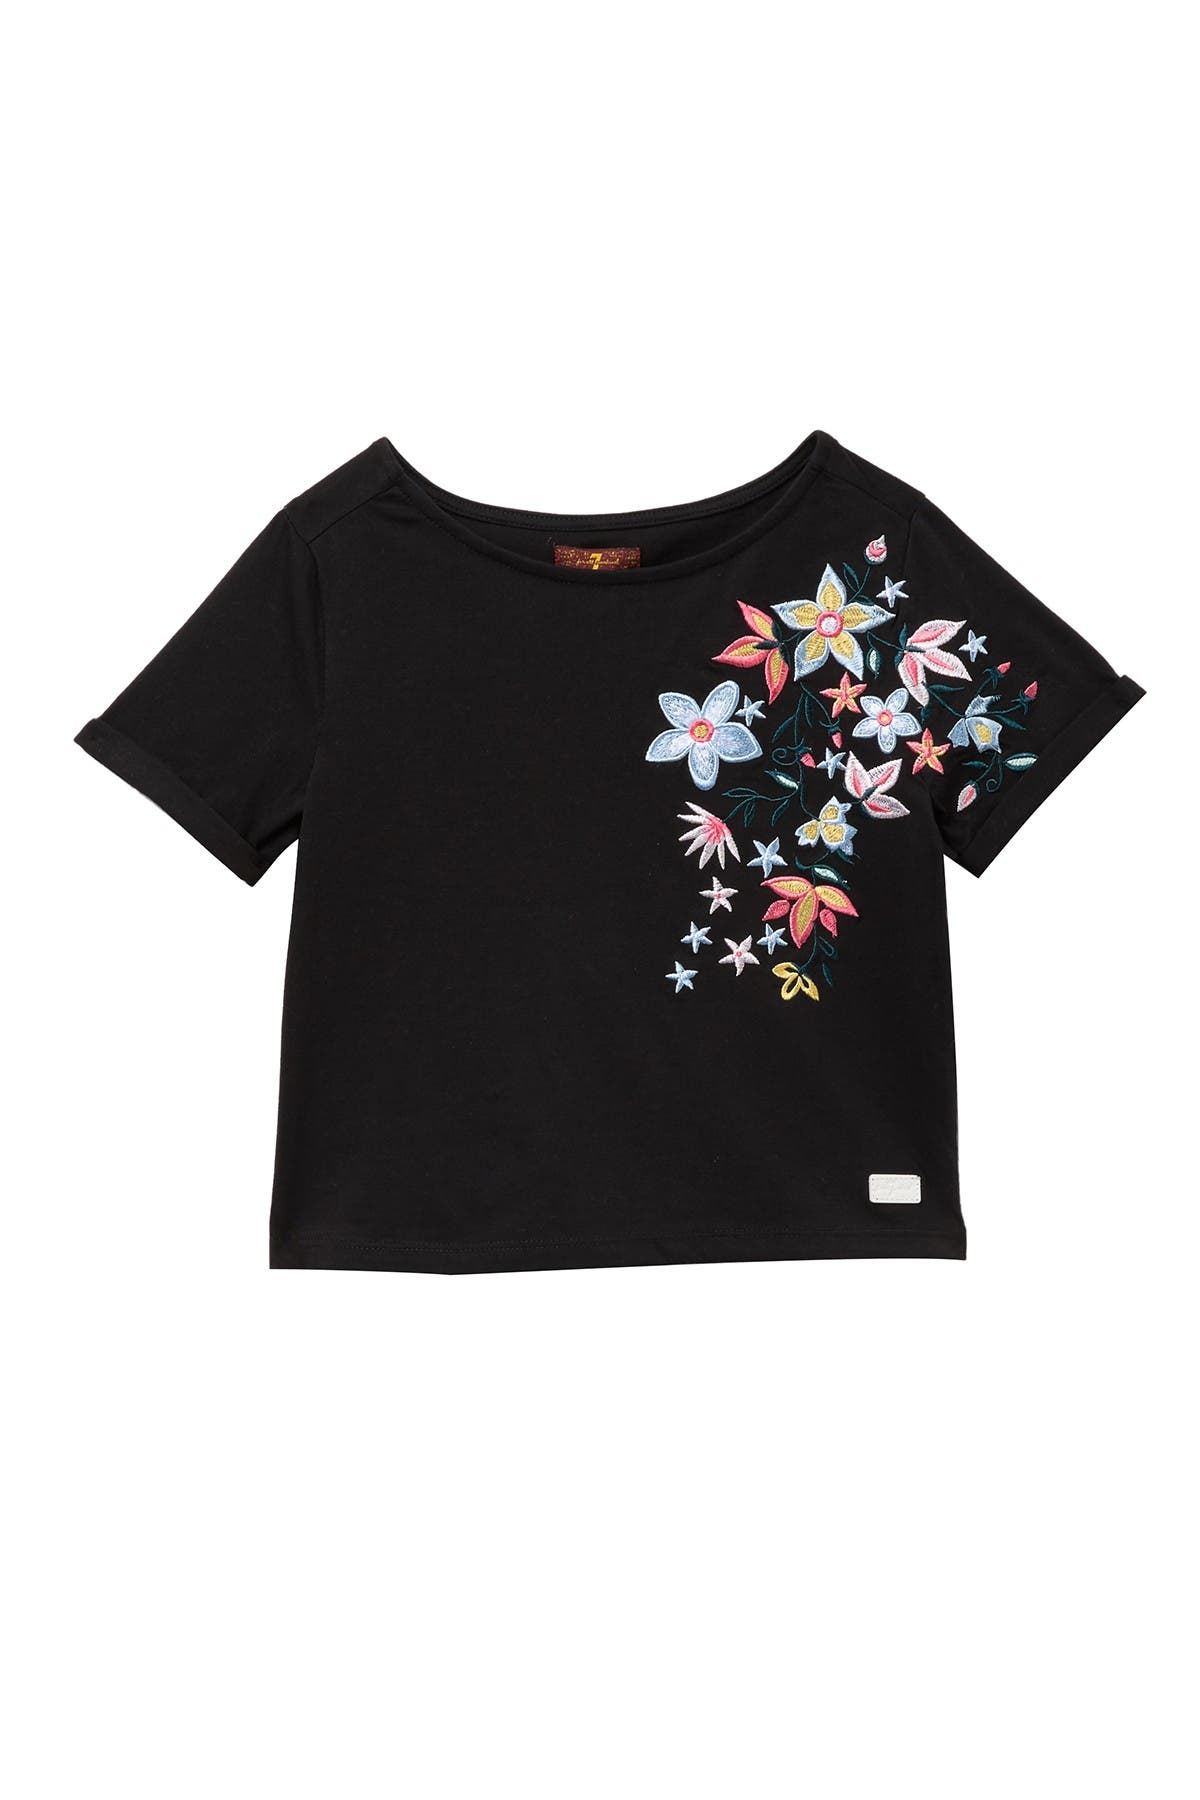 Image of 7 For All Mankind Cropped Embro Tee